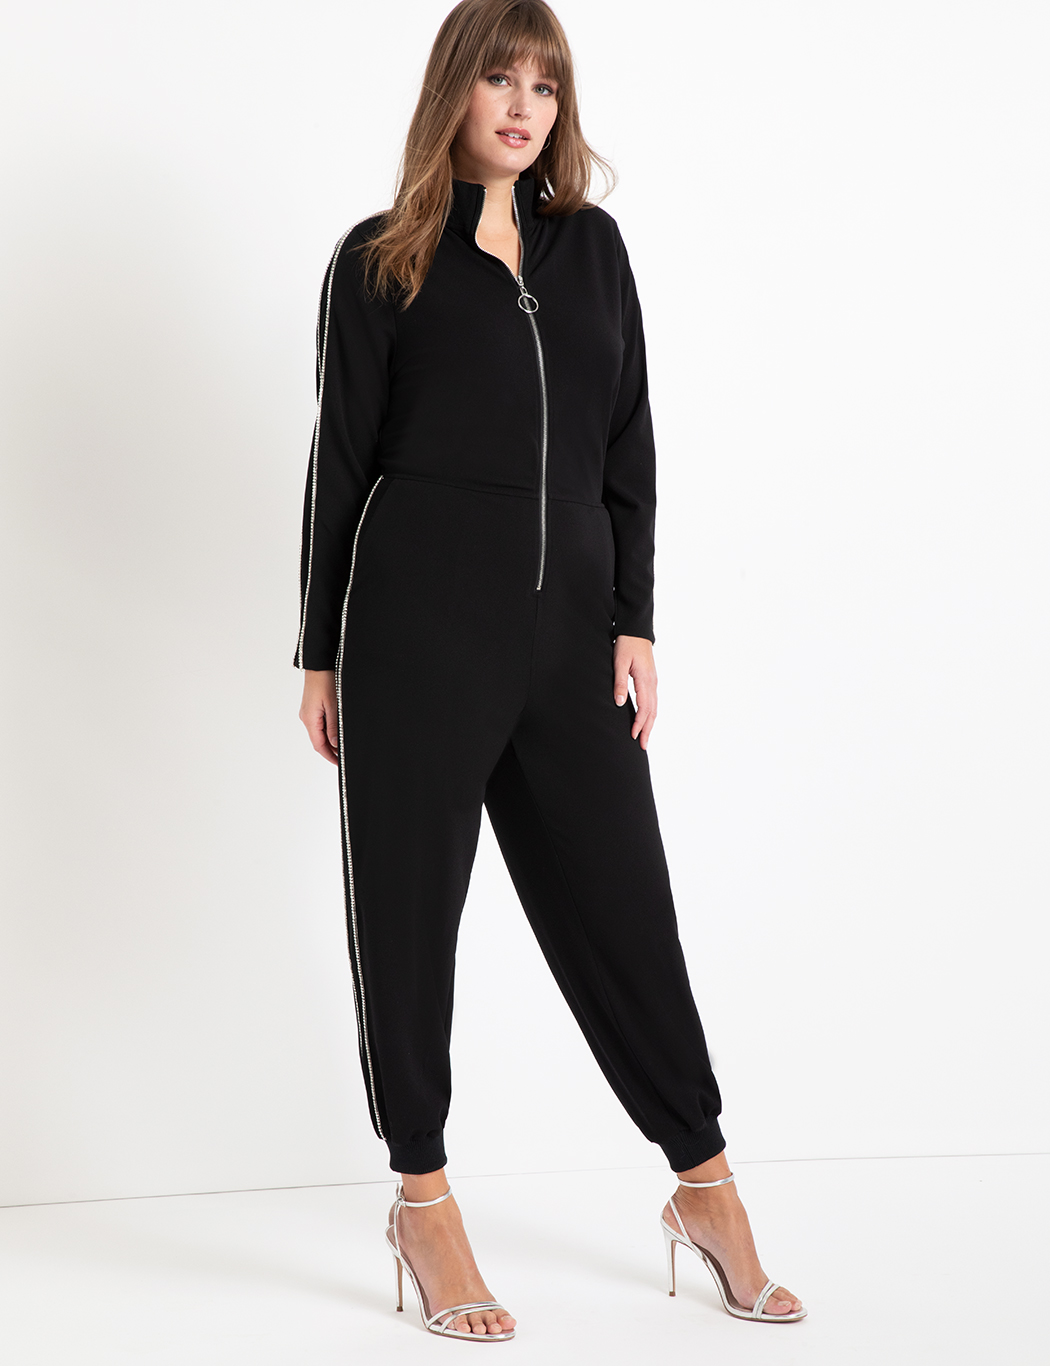 Jumpsuit with Rhinestones